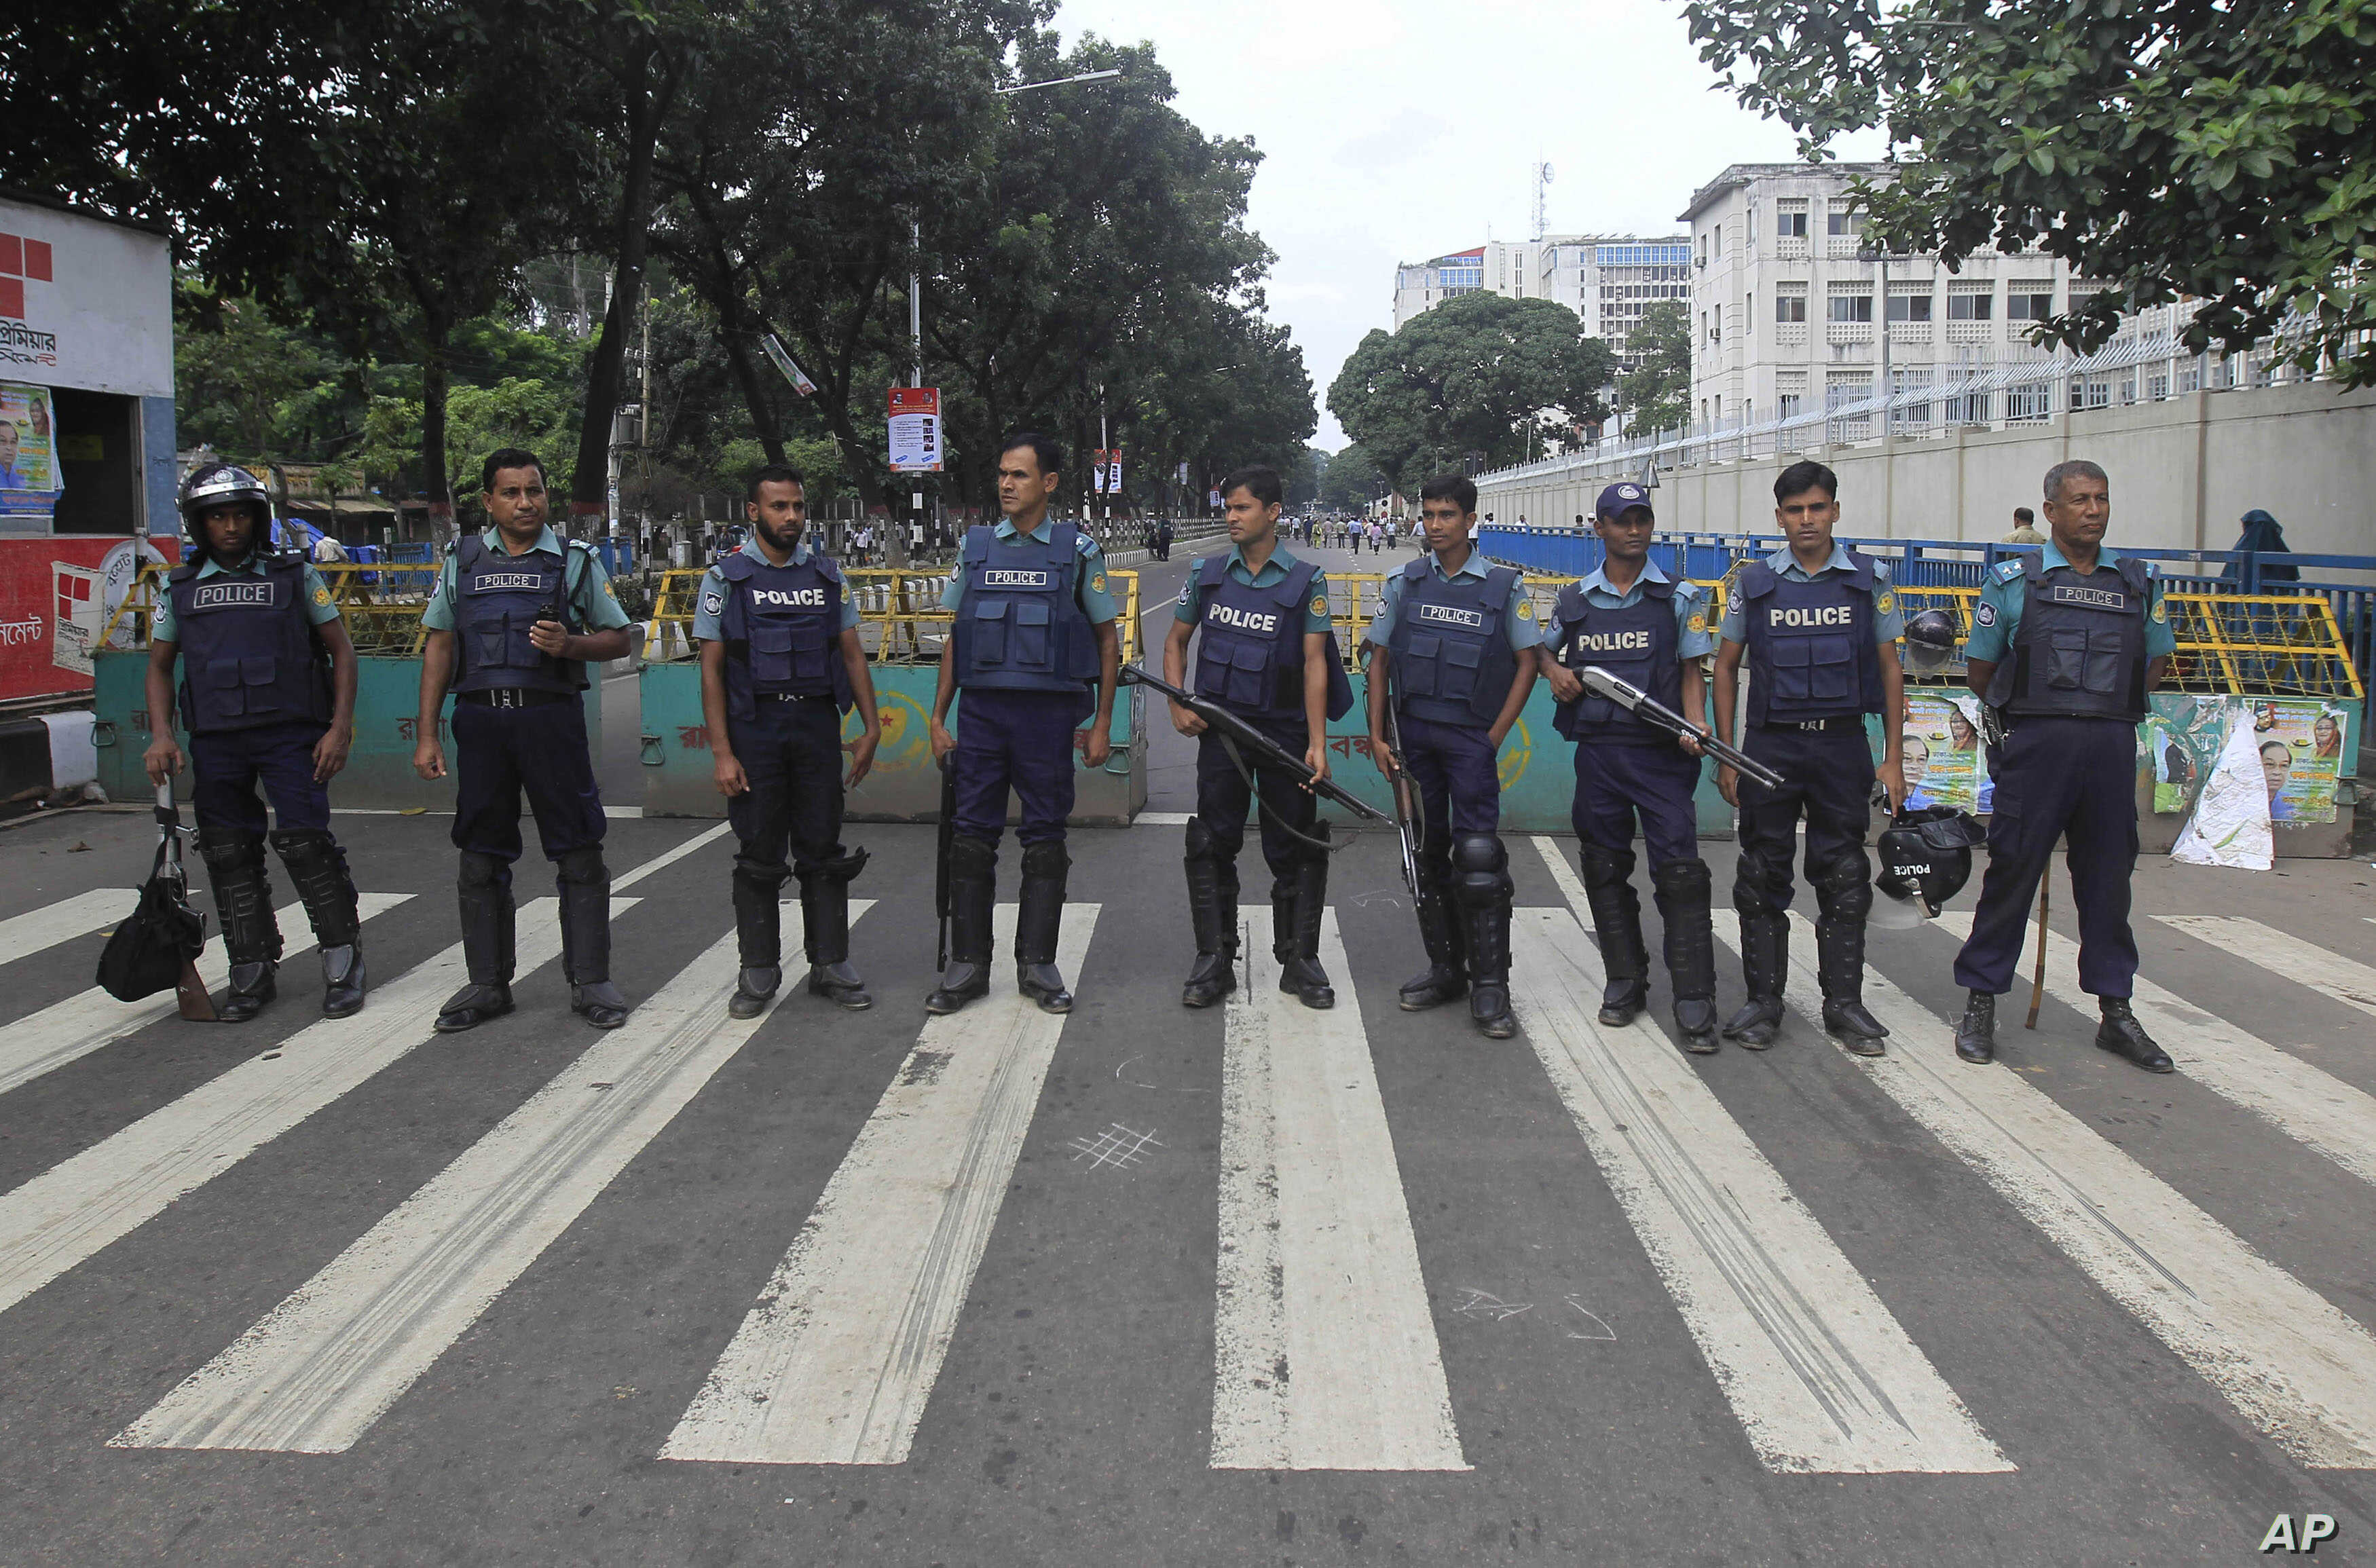 Bangladeshi police officials stand guard on a street during a general strike in Dhaka, Bangladesh, Oct. 27, 2013.